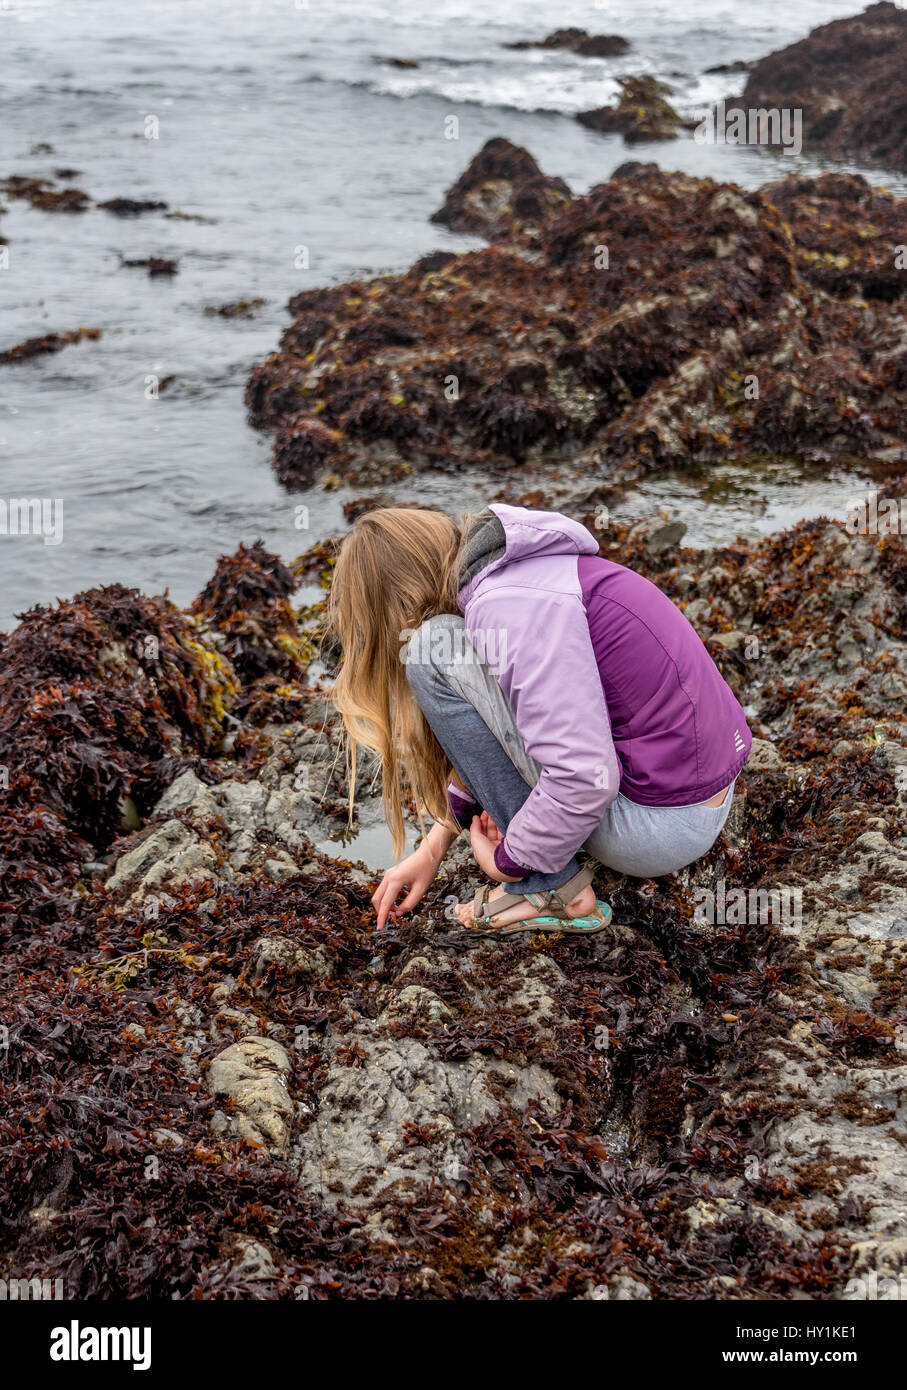 A girl with long blond hair crouches down or squats down, touching tide pool while tidepooling at MacKerricher State - Stock Image